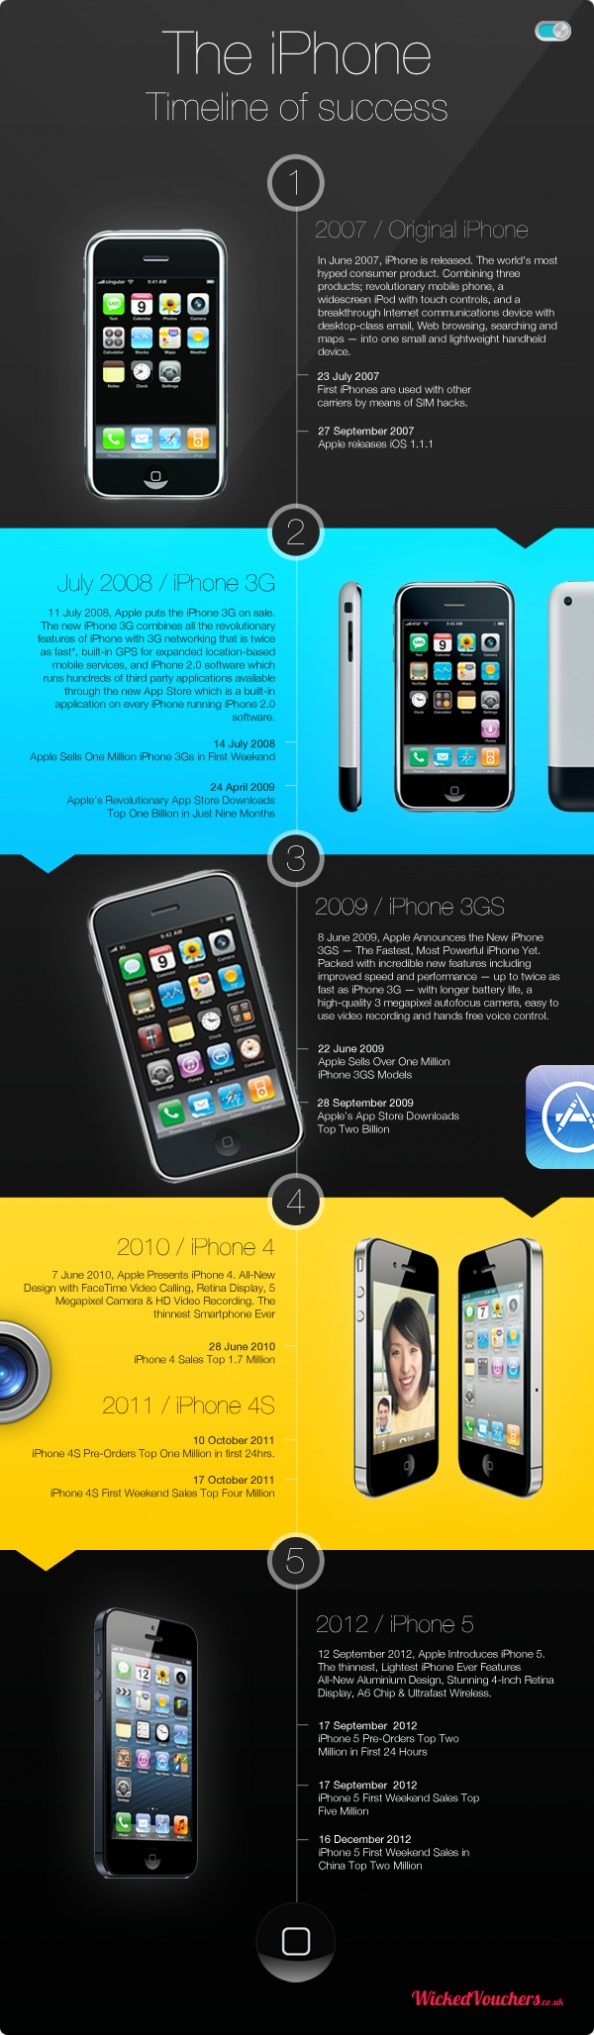 History of iPone